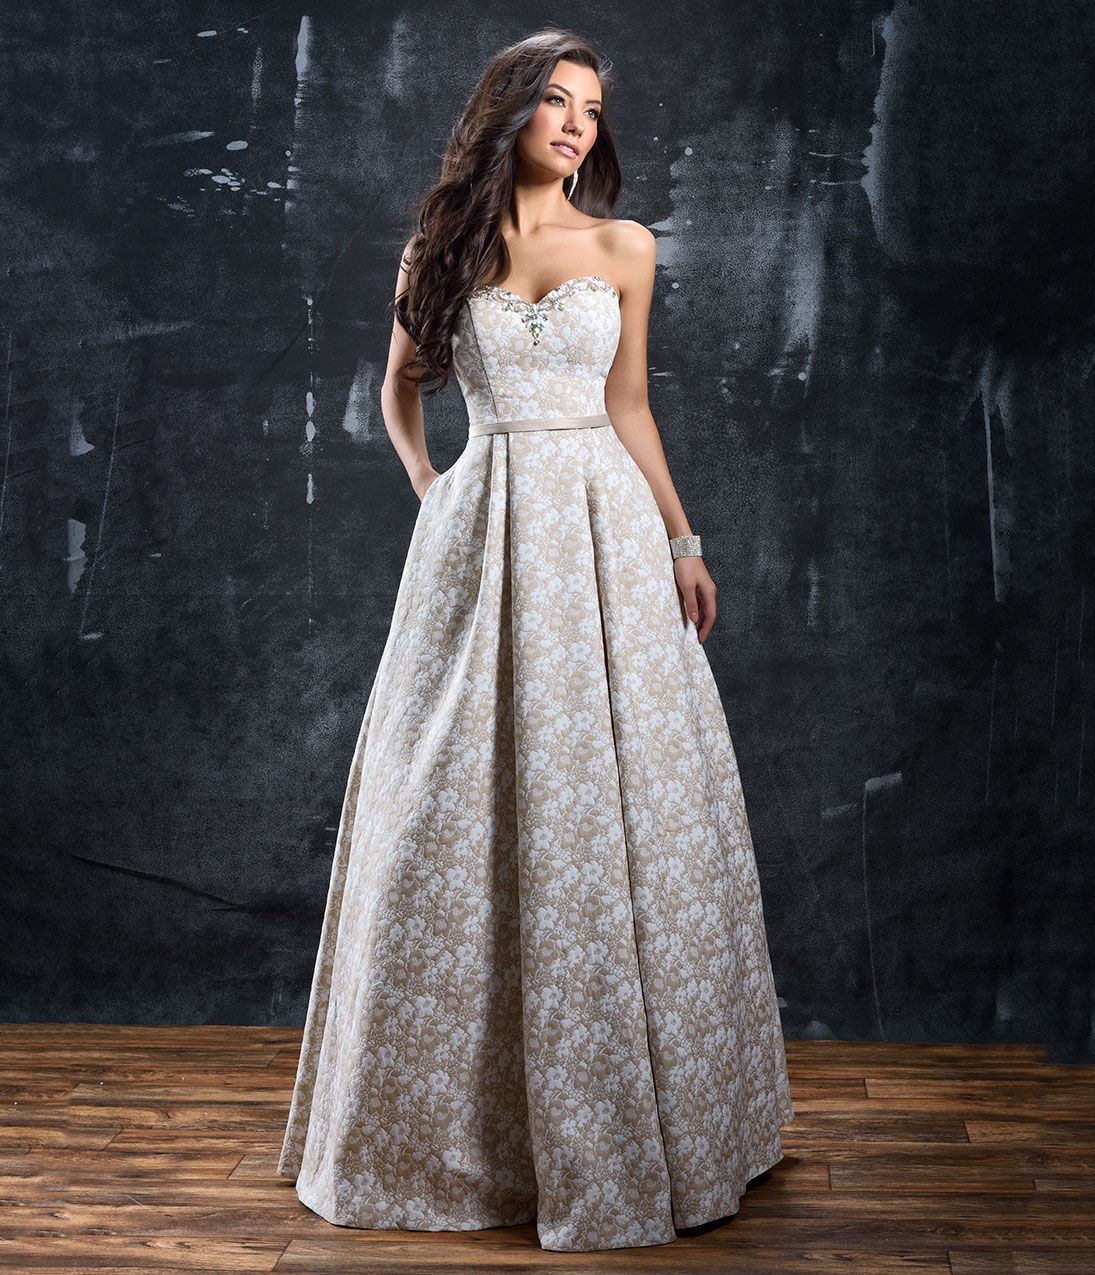 Vintage inspired evening dresses gowns and formal wear strapless